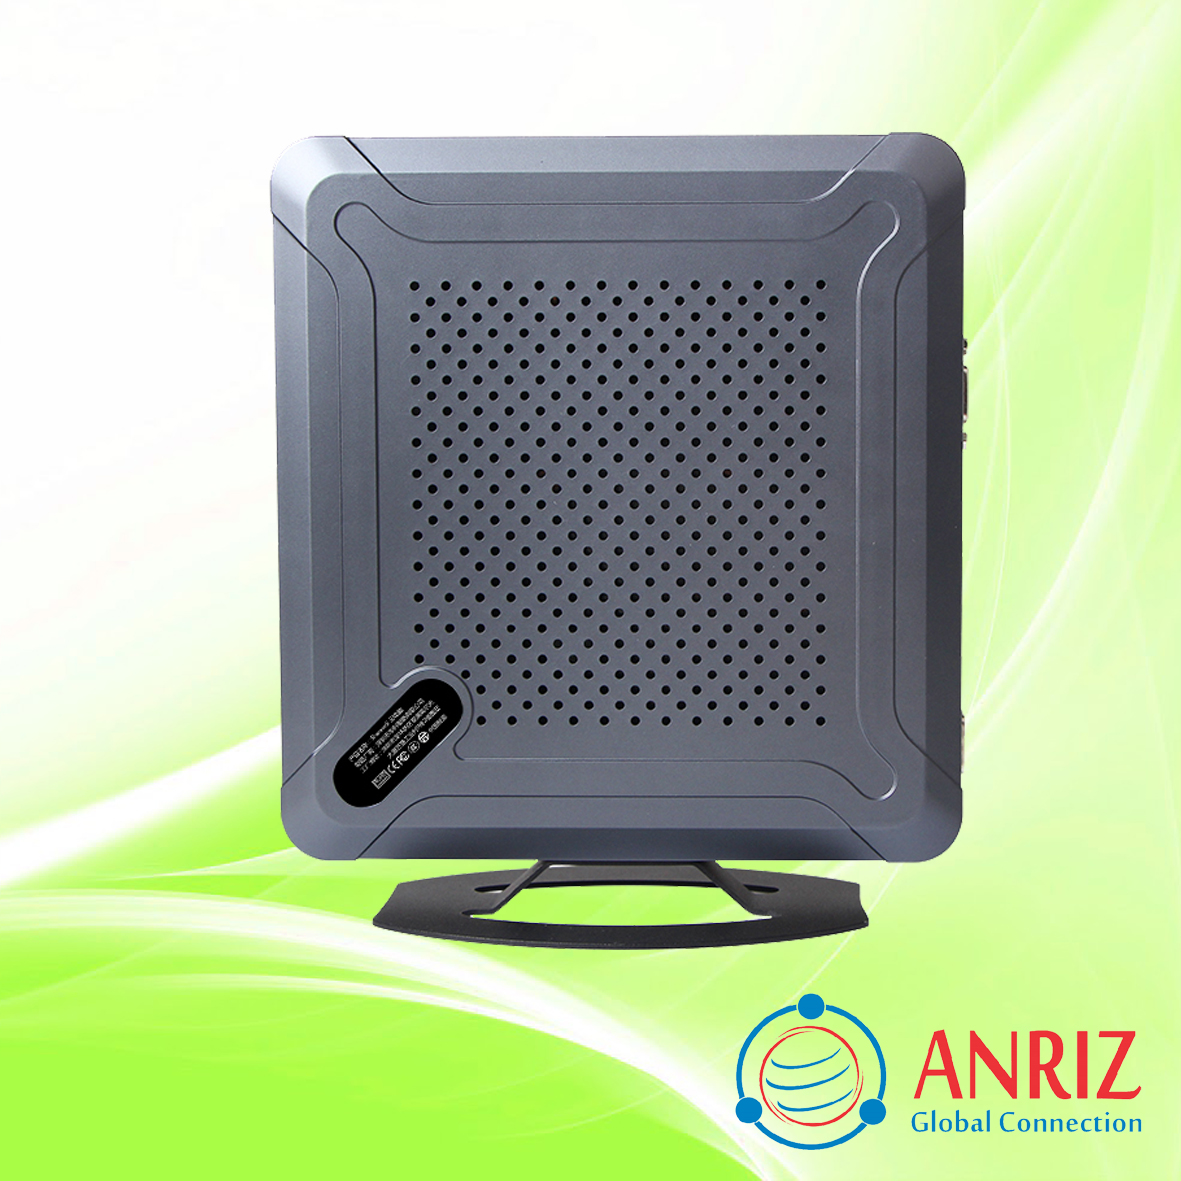 Mini PC AGC 3700 Samping